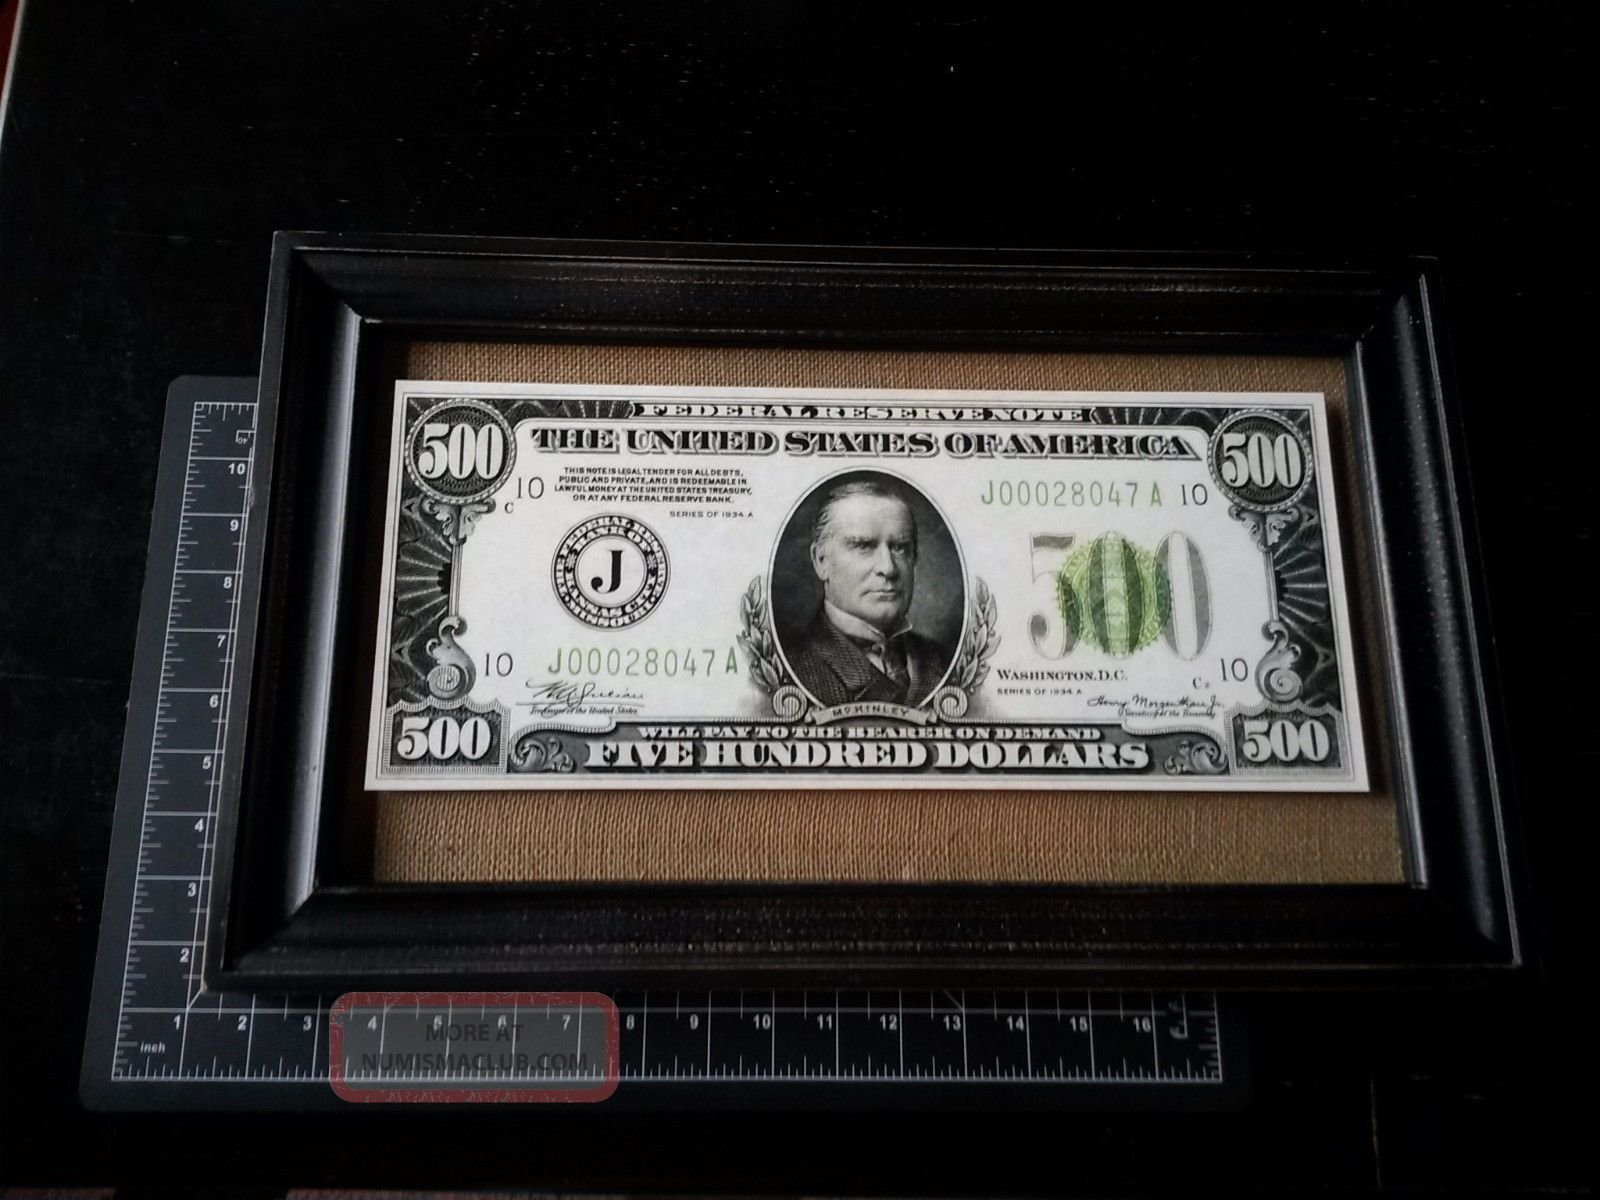 $500 Federal Reserve Note - Mckinley - Series 1934 - Oversize Reproduction Framed Paper Money: US photo